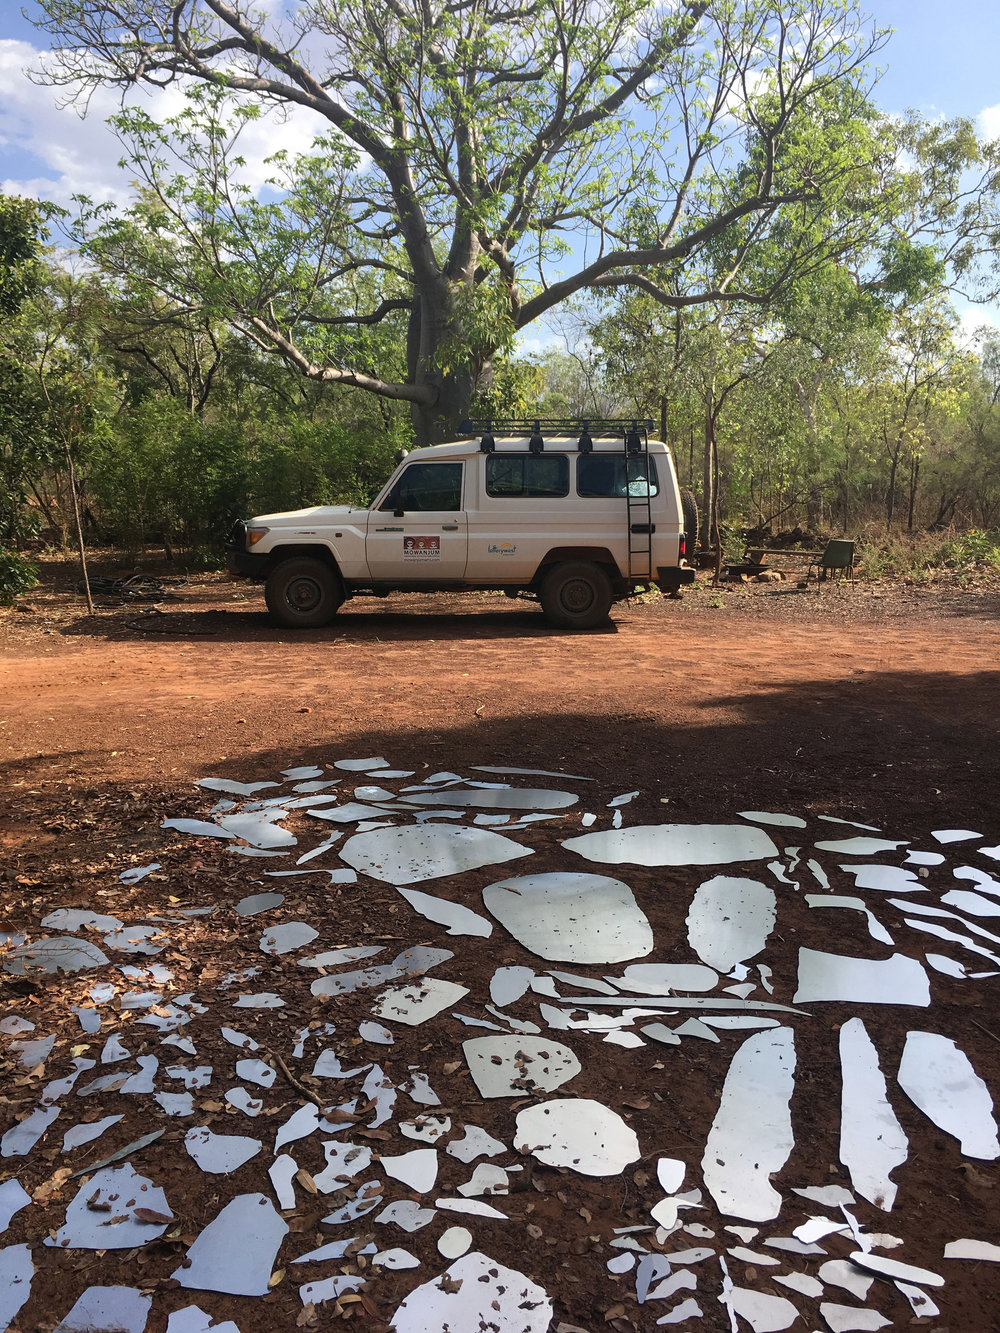 Aluminum printing plates left exposed to Kimberley environment and wildlife to accumulate marks before printing.